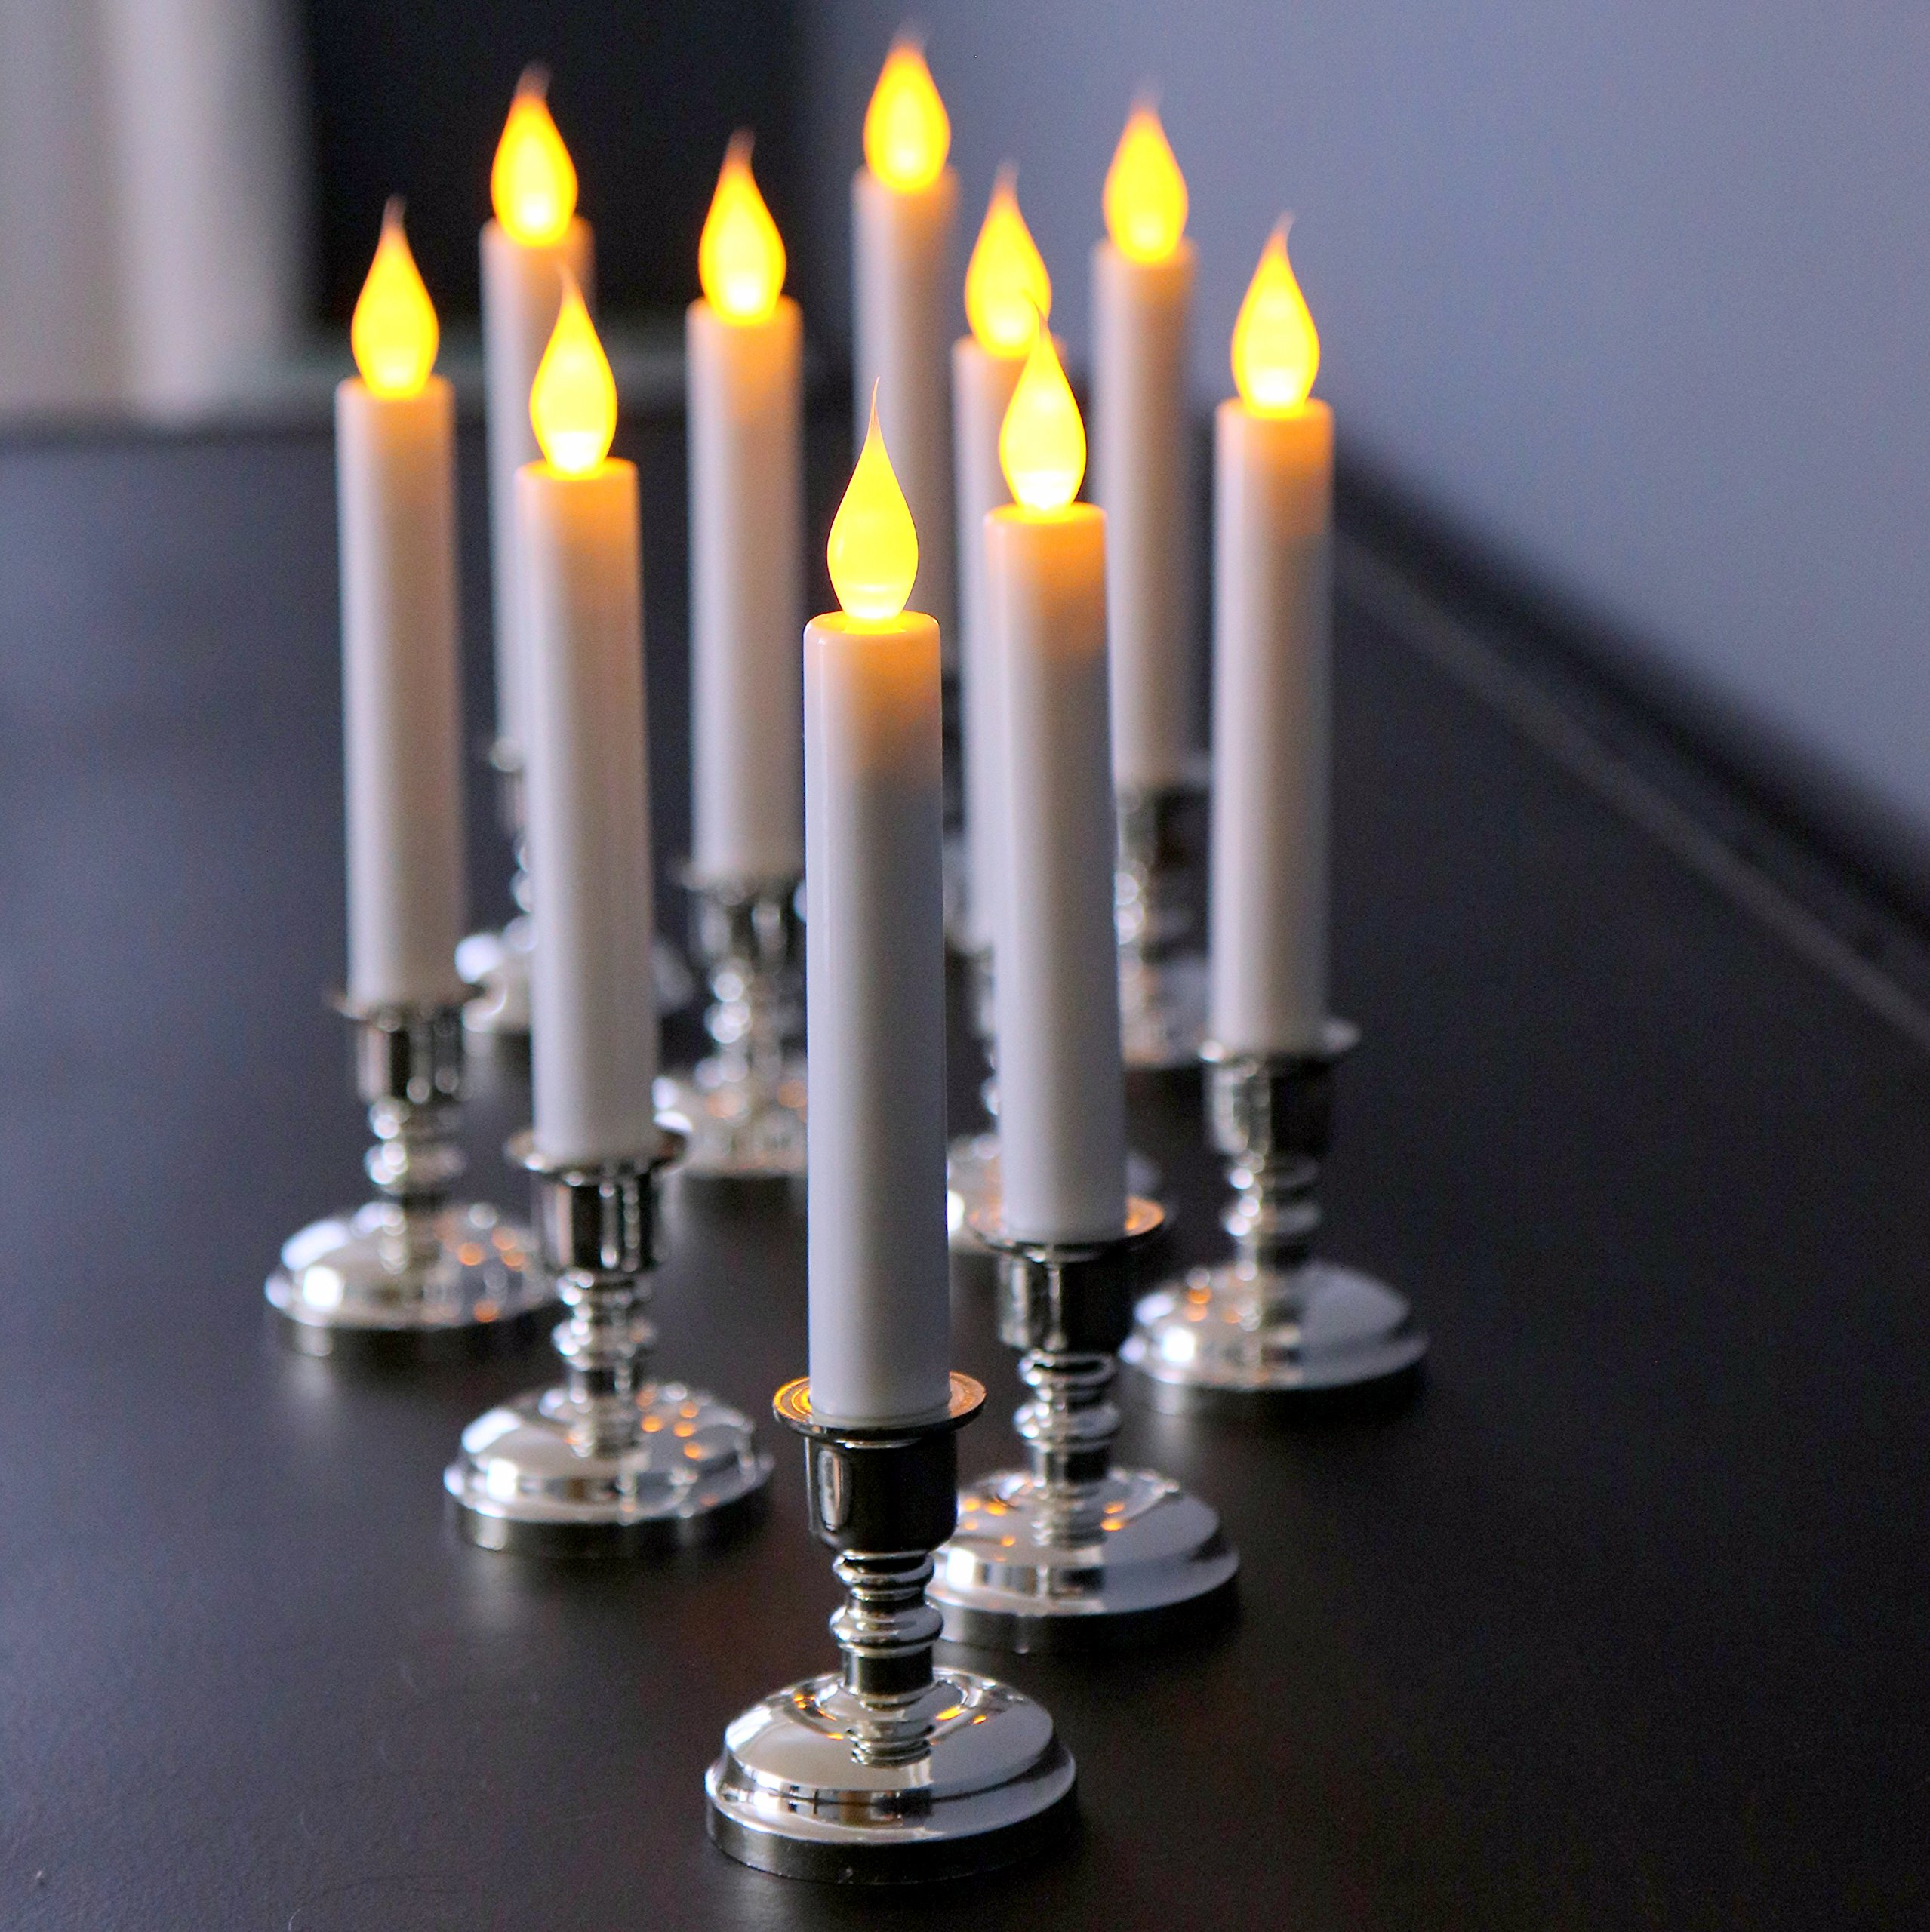 Set of 10 Flameless White Taper Window Candles with Removable Silver Candleholders with Timer and Remote, Batteries Included by Enchanted Spaces (Image #9)